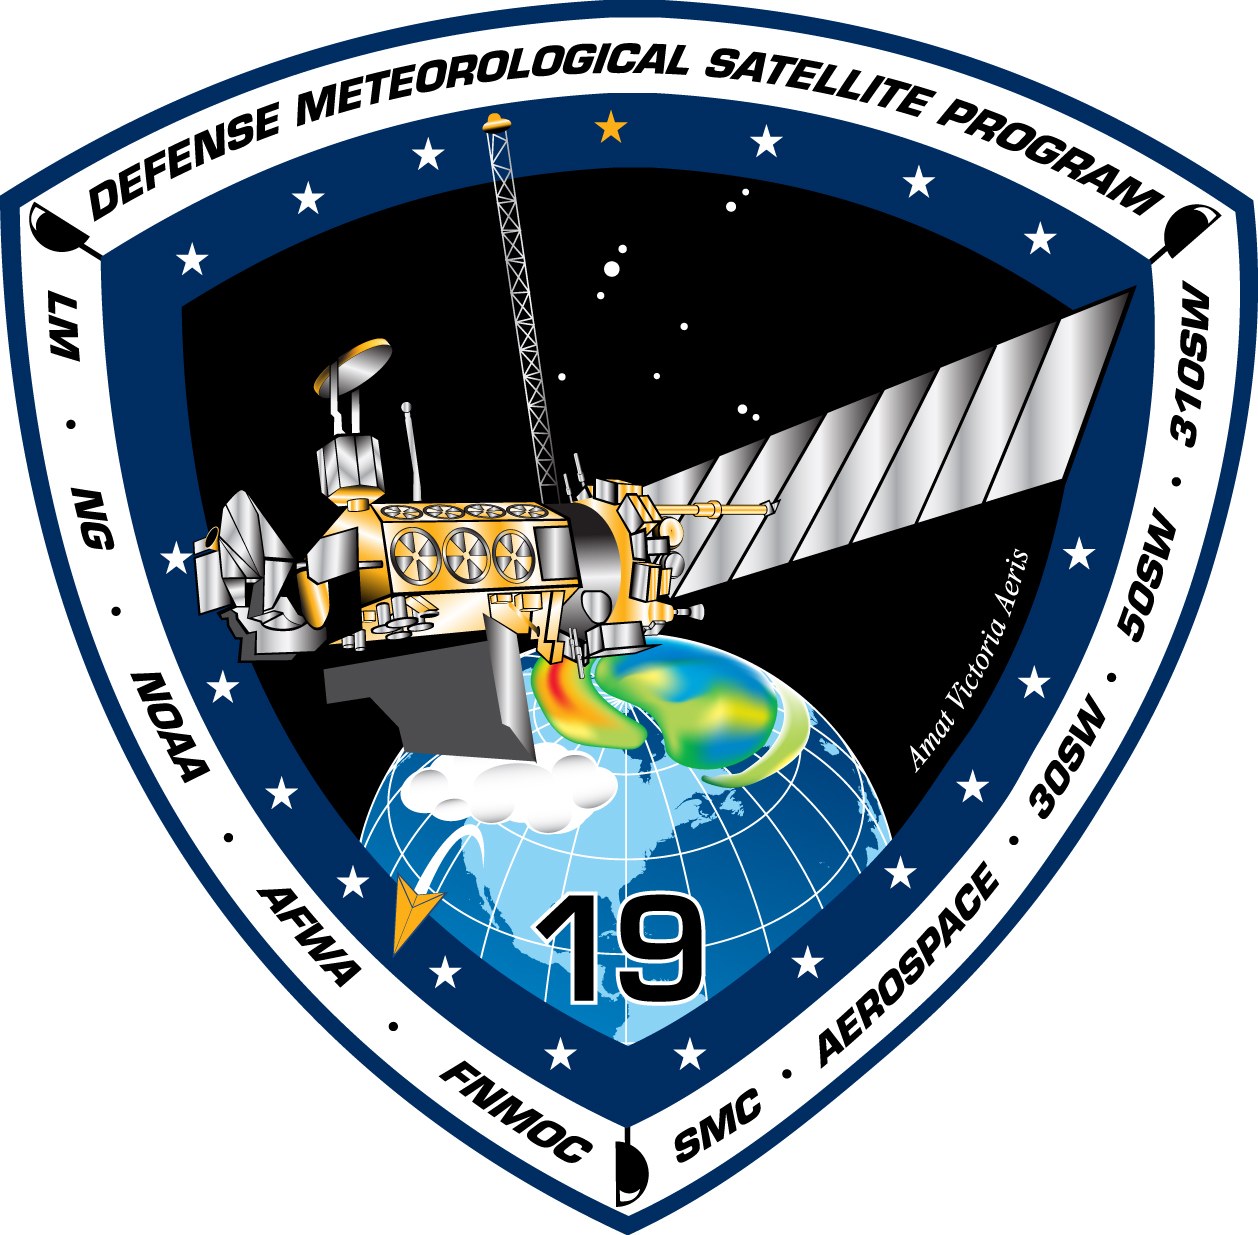 Defense Meteorological Satellite Program Flight 19 Satellite